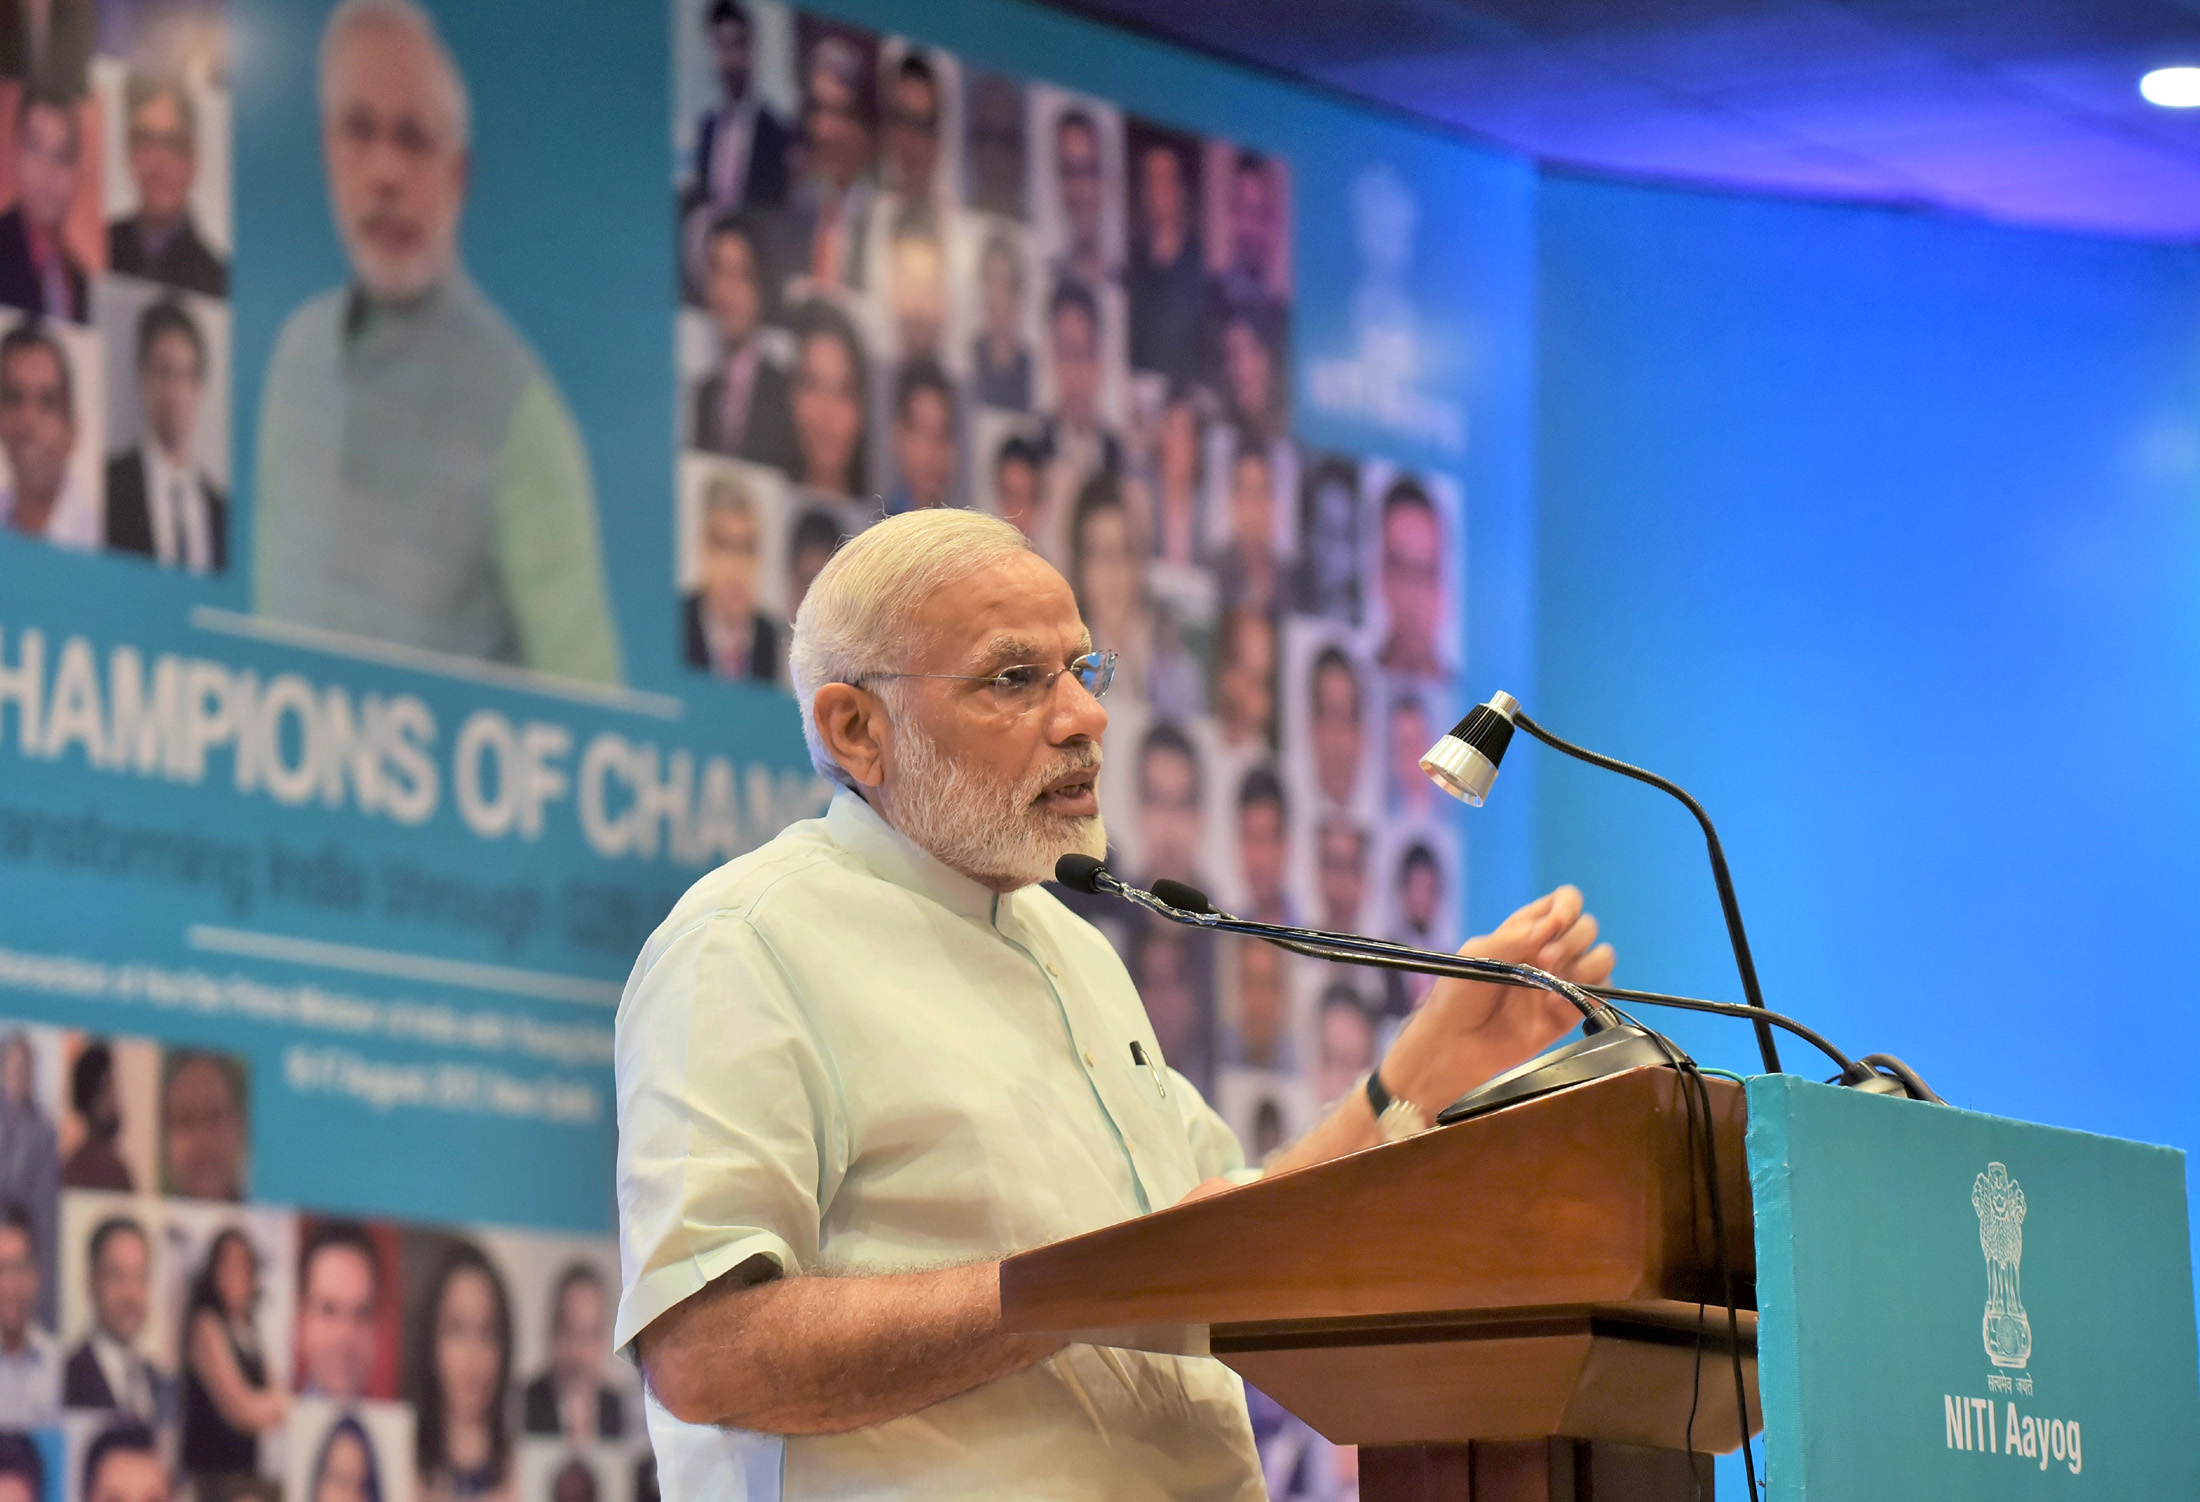 All Around Us, Narendra Modi's Messiah Image Is Quickly Fading